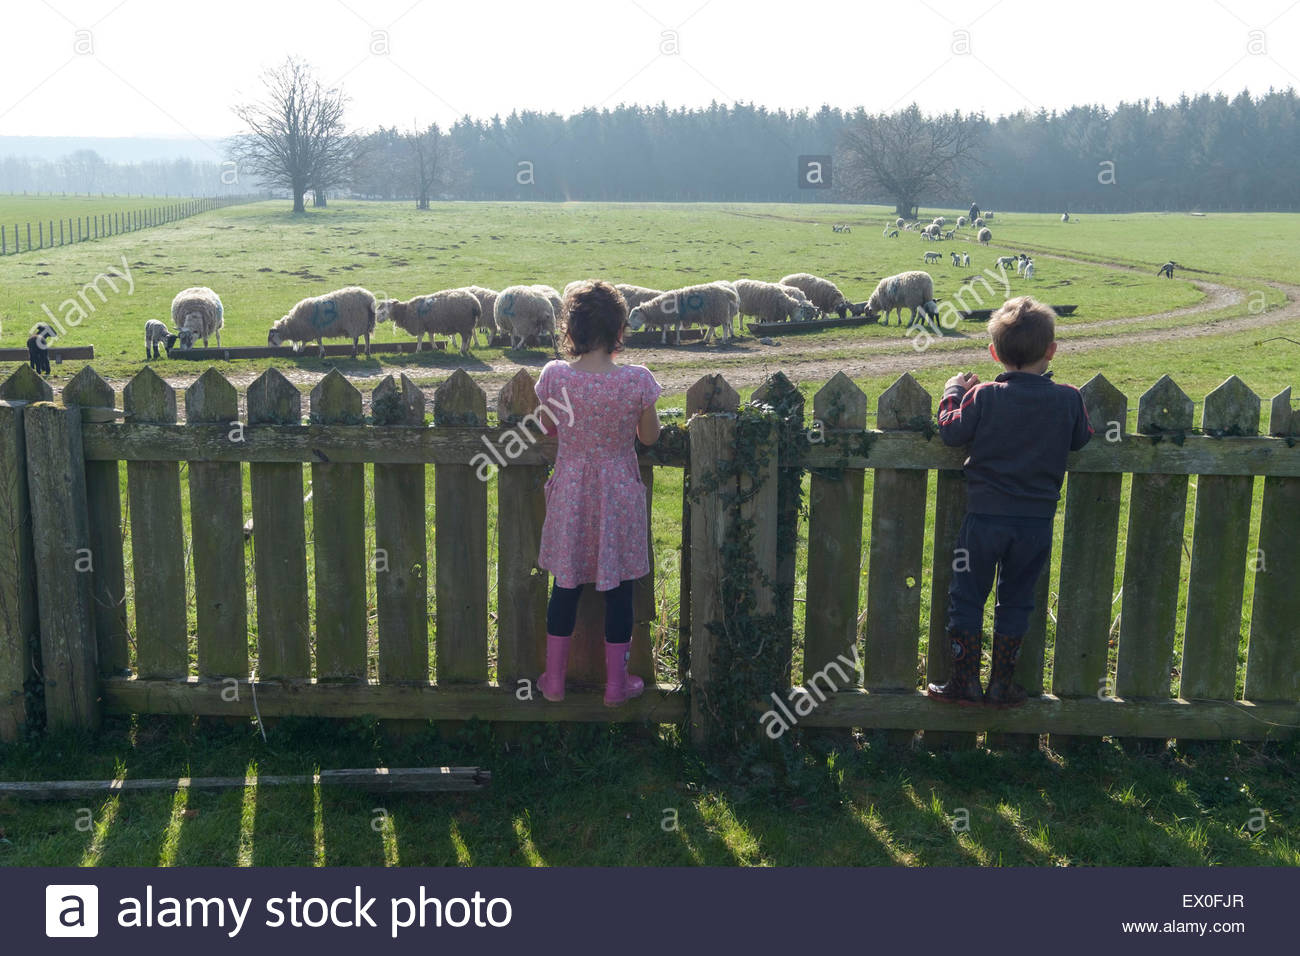 Two children looking over a fence at some sheep - Stock Image